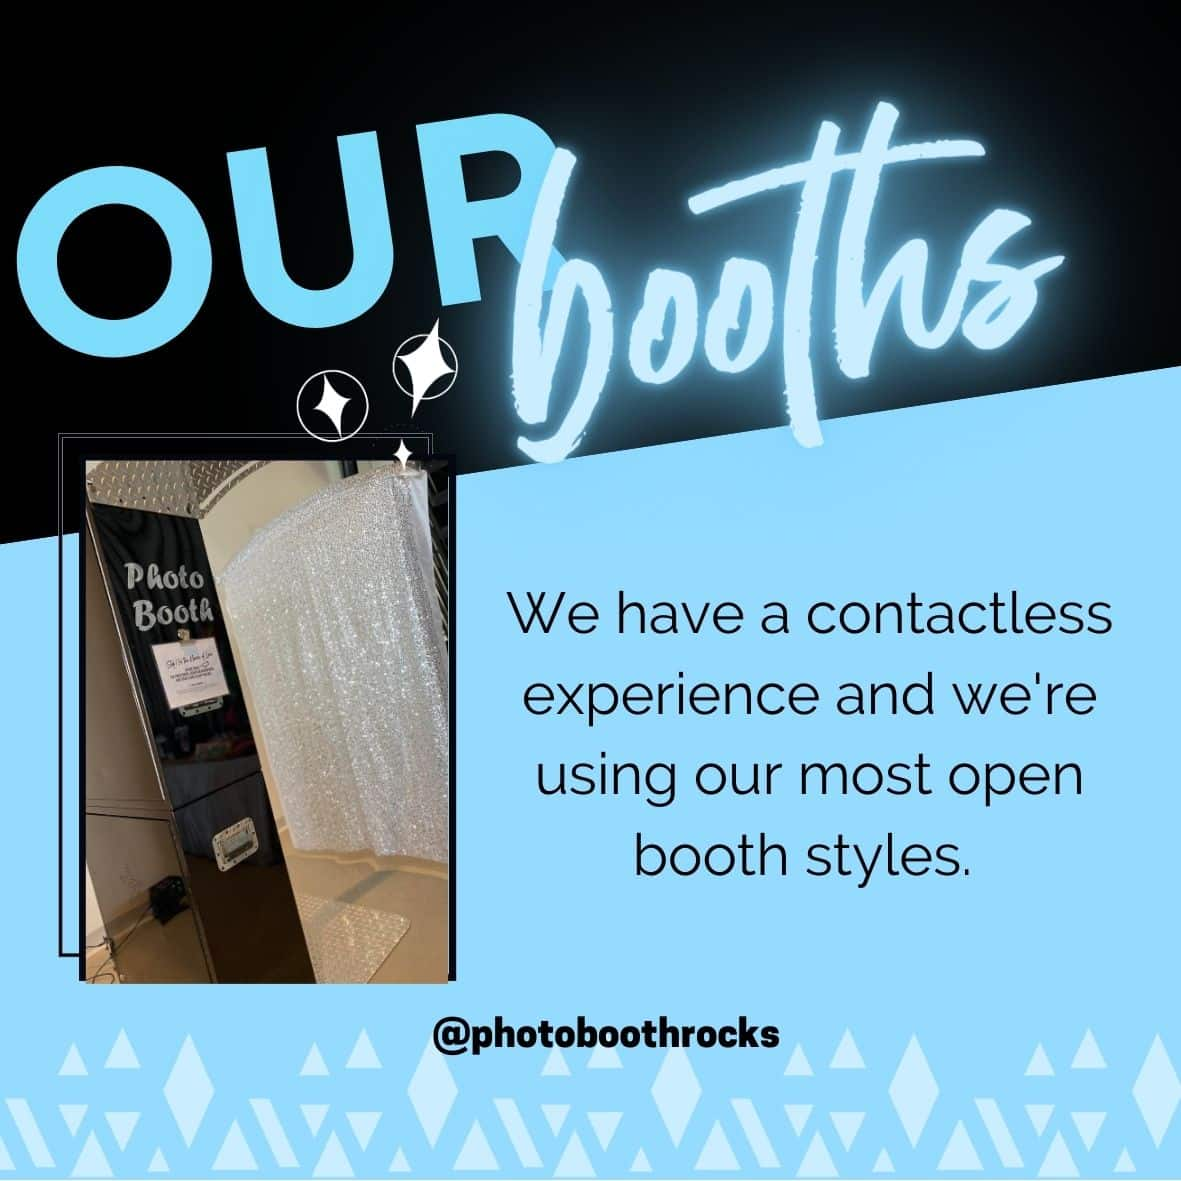 covid event procedures for photo booth